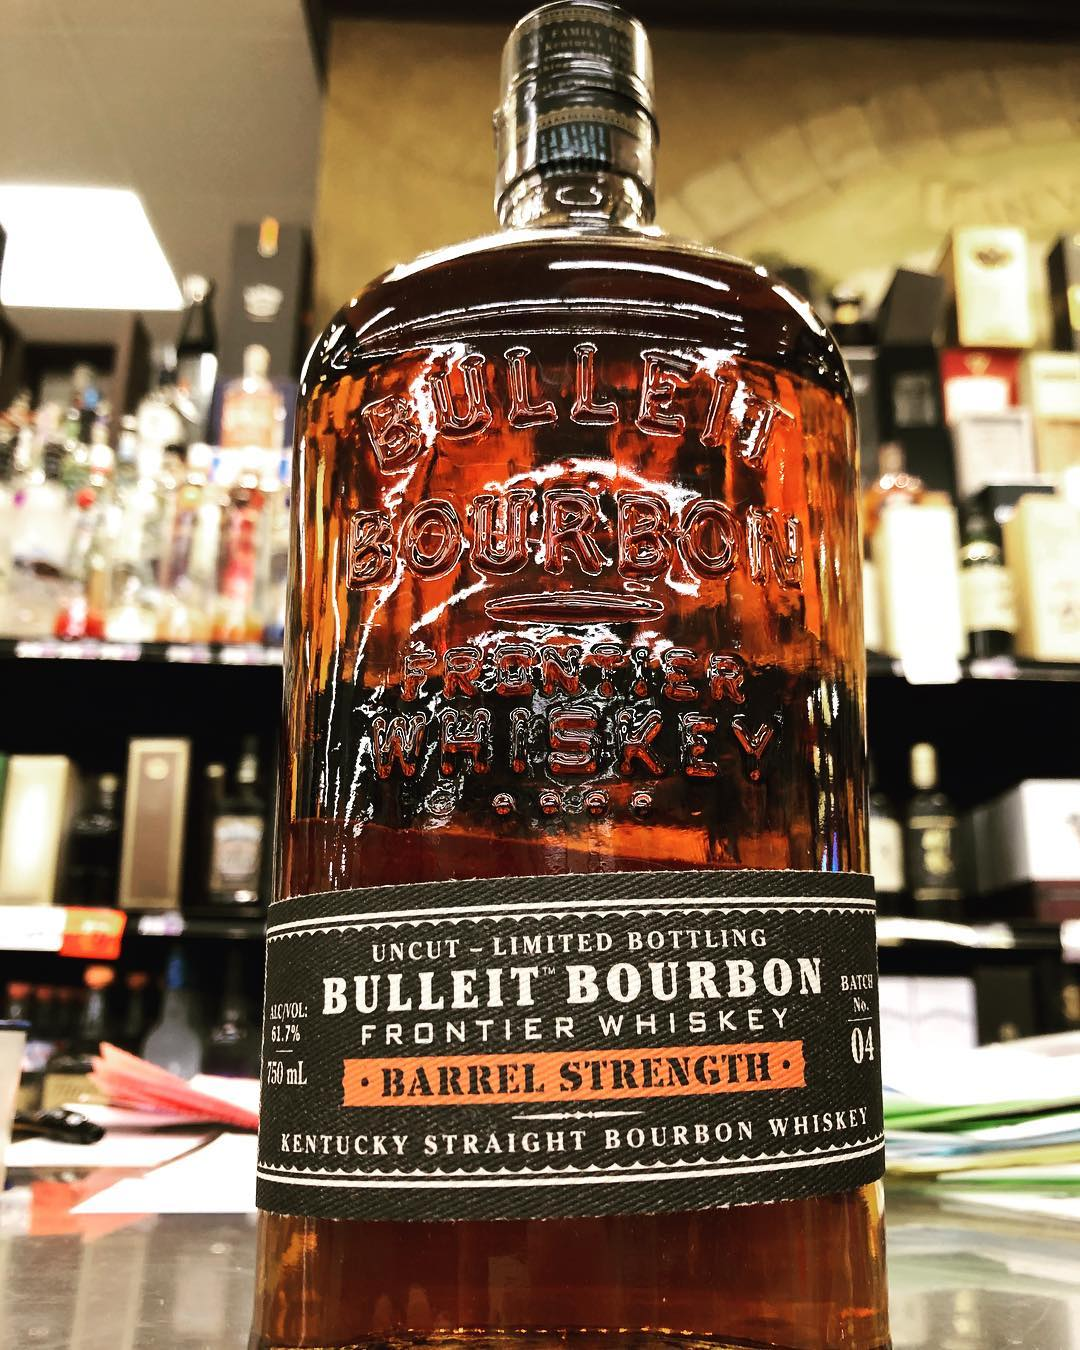 @bulleitwhiskey Limited Bottling Barrel Strength is now available at our Perkins Rd location! Clocking in…